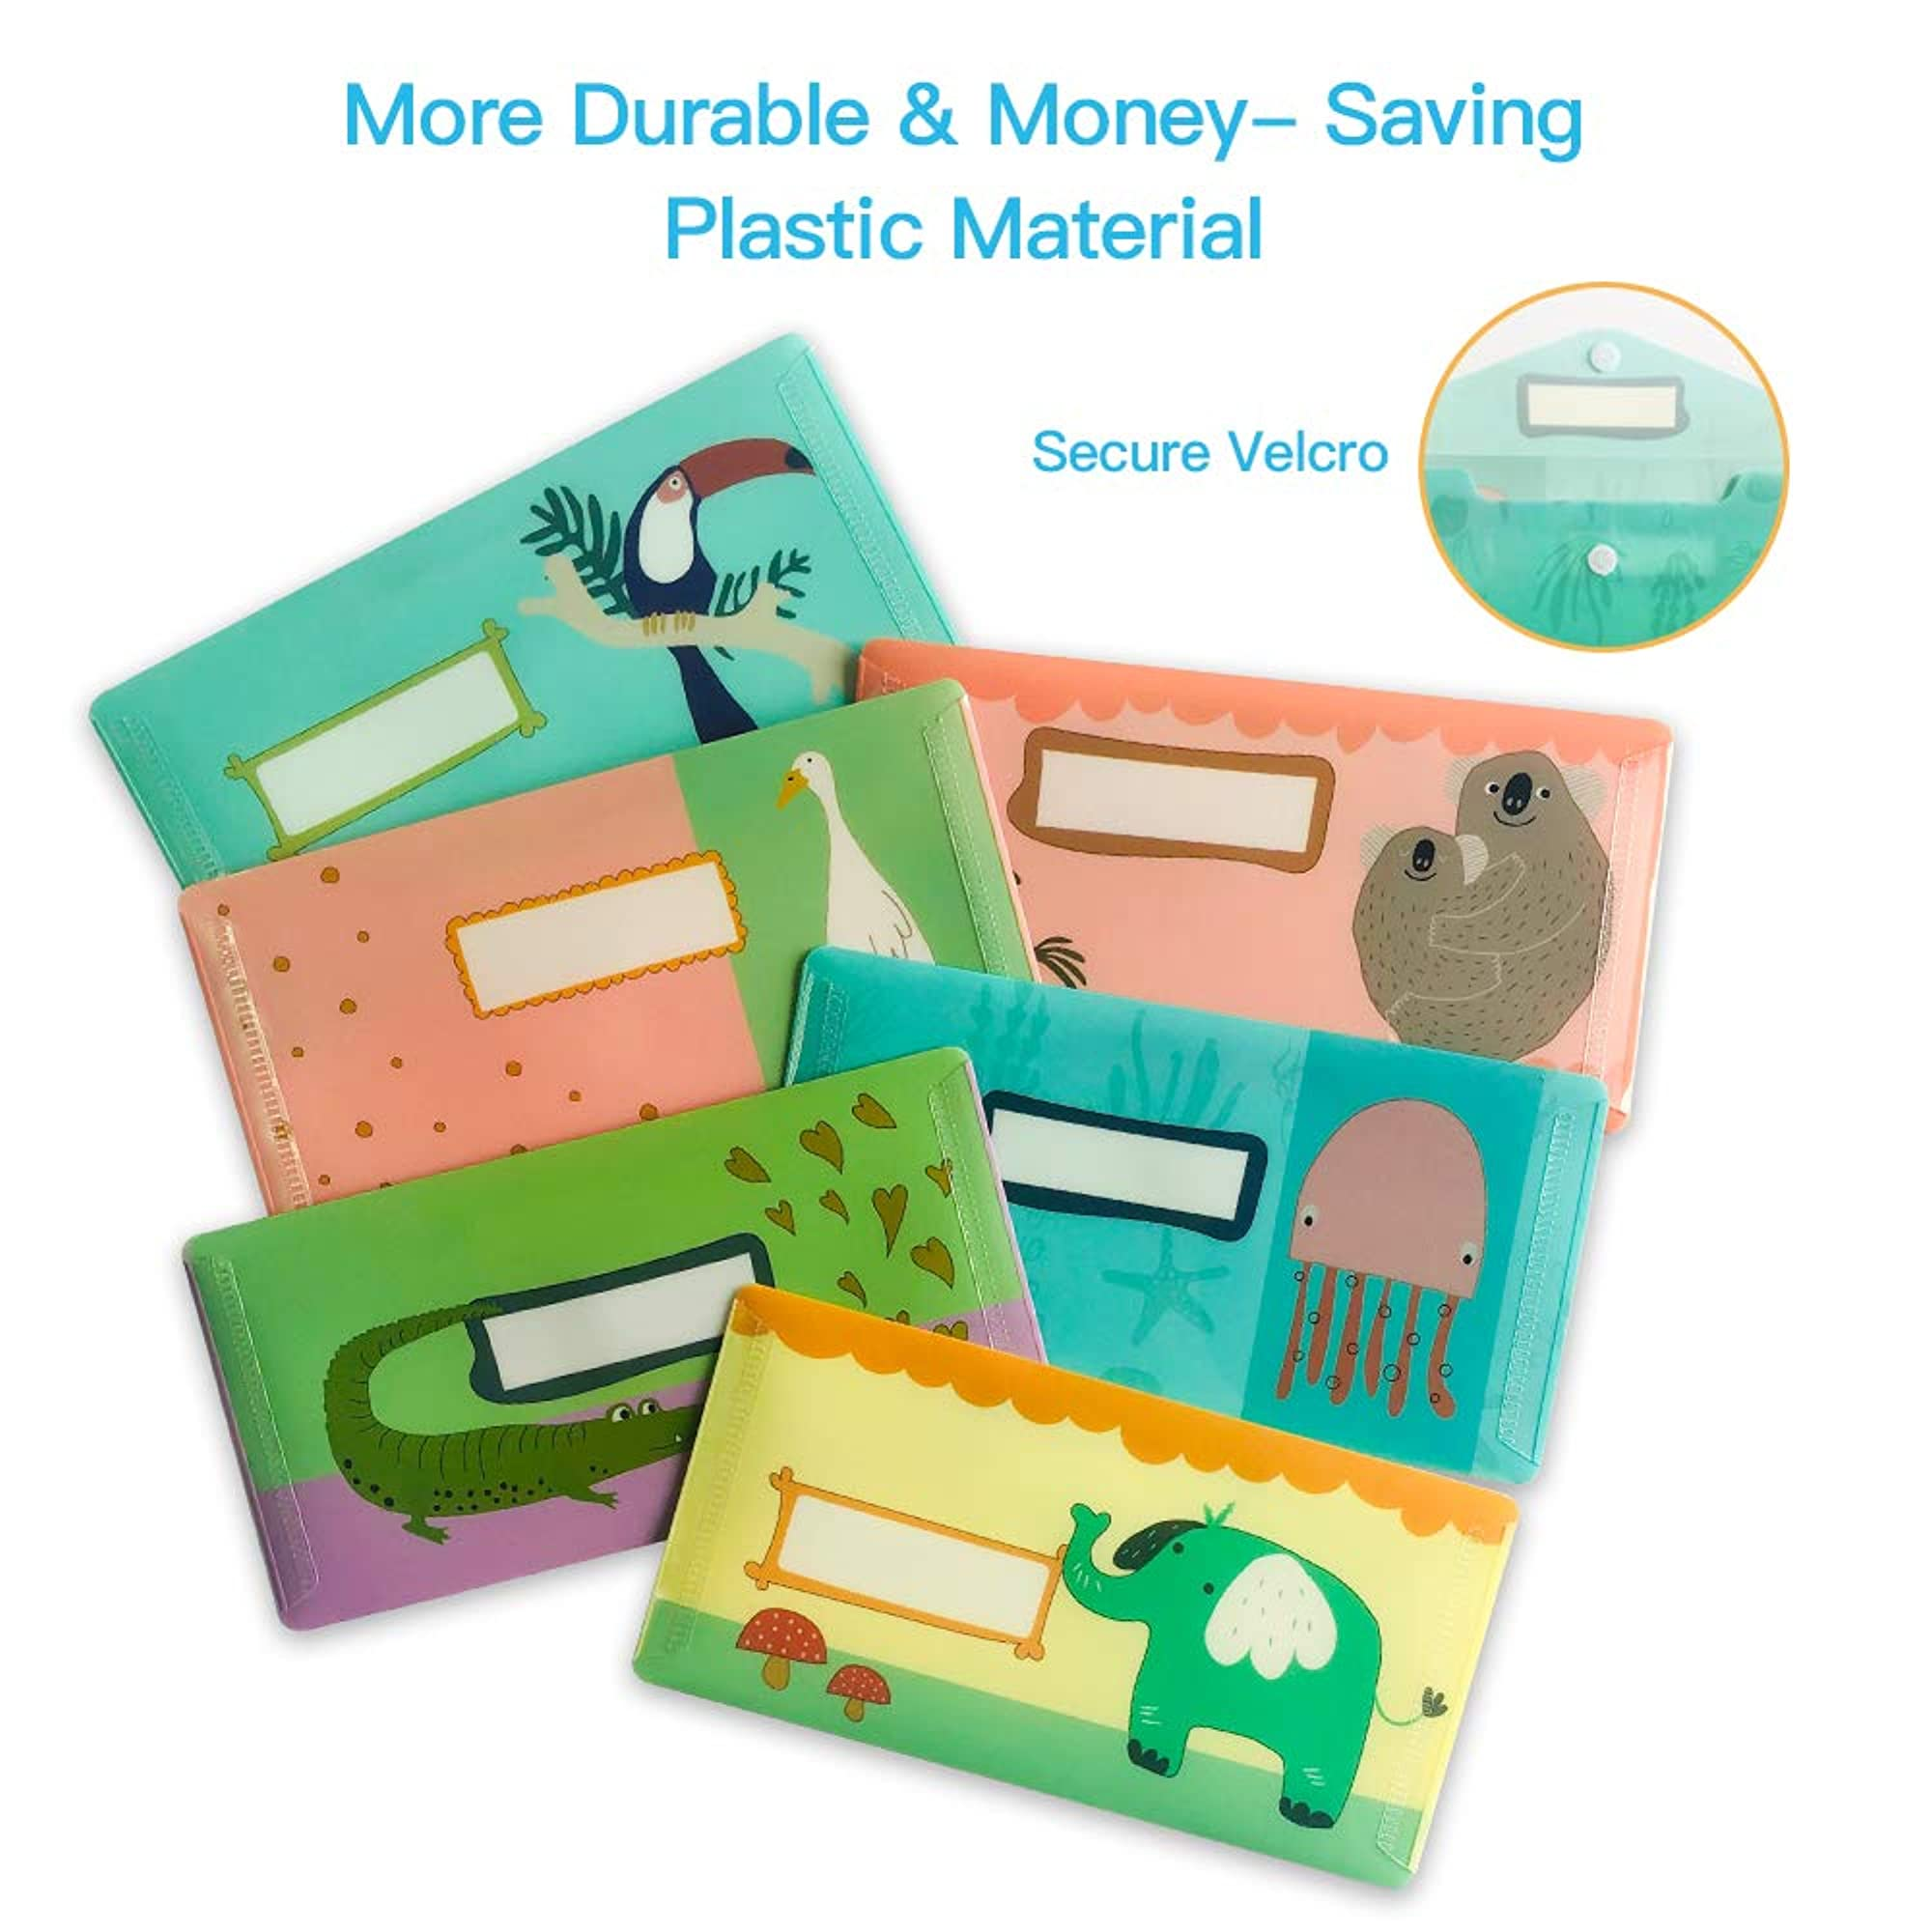 12 Pieces Of Reusable Budget Envelopes